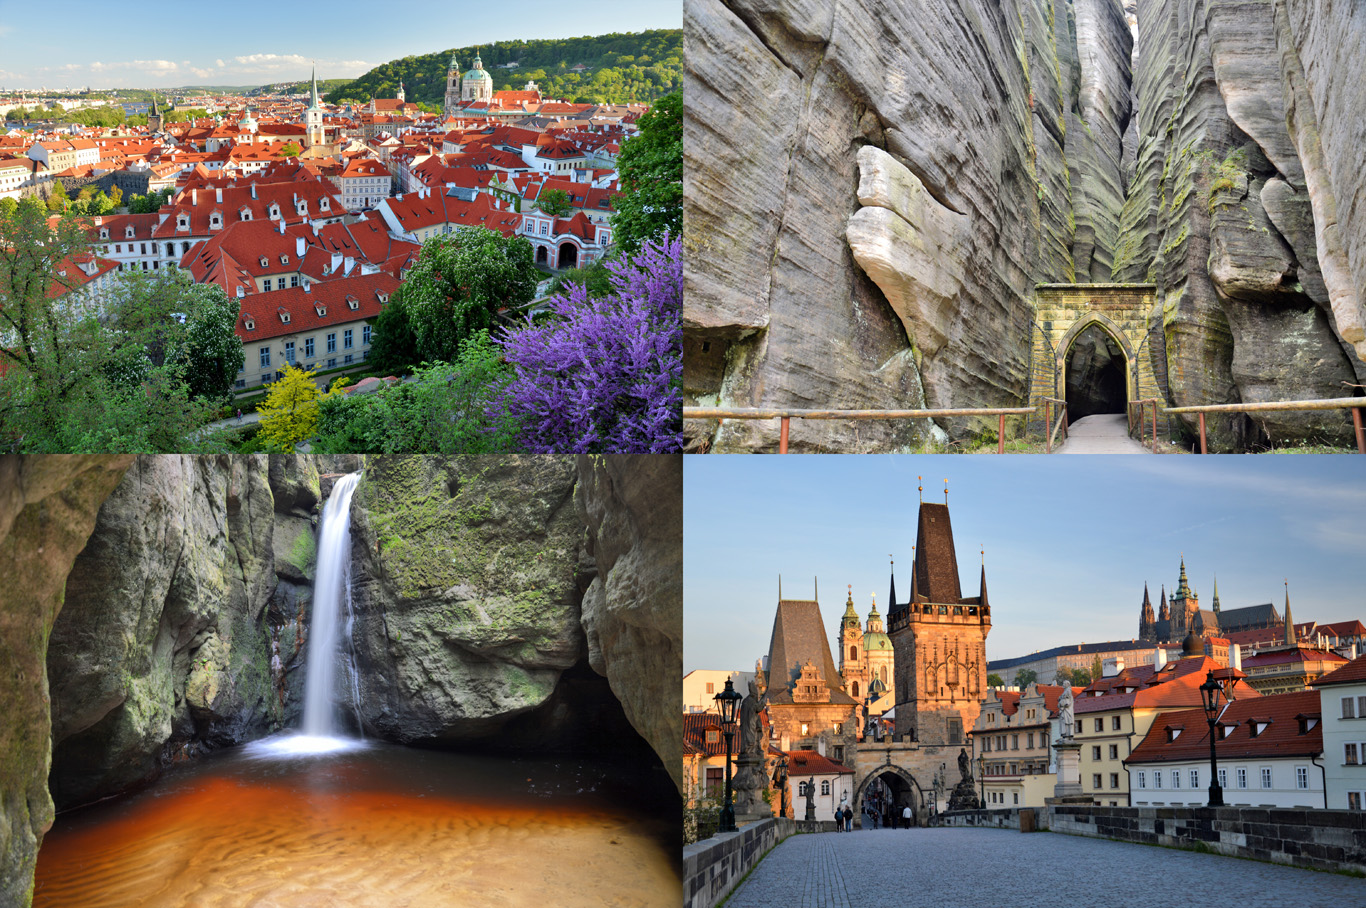 From top left: Prague castle hill, the gate in Adrspach Rock Town, the waterfall in Adrspach and Charles Bridge